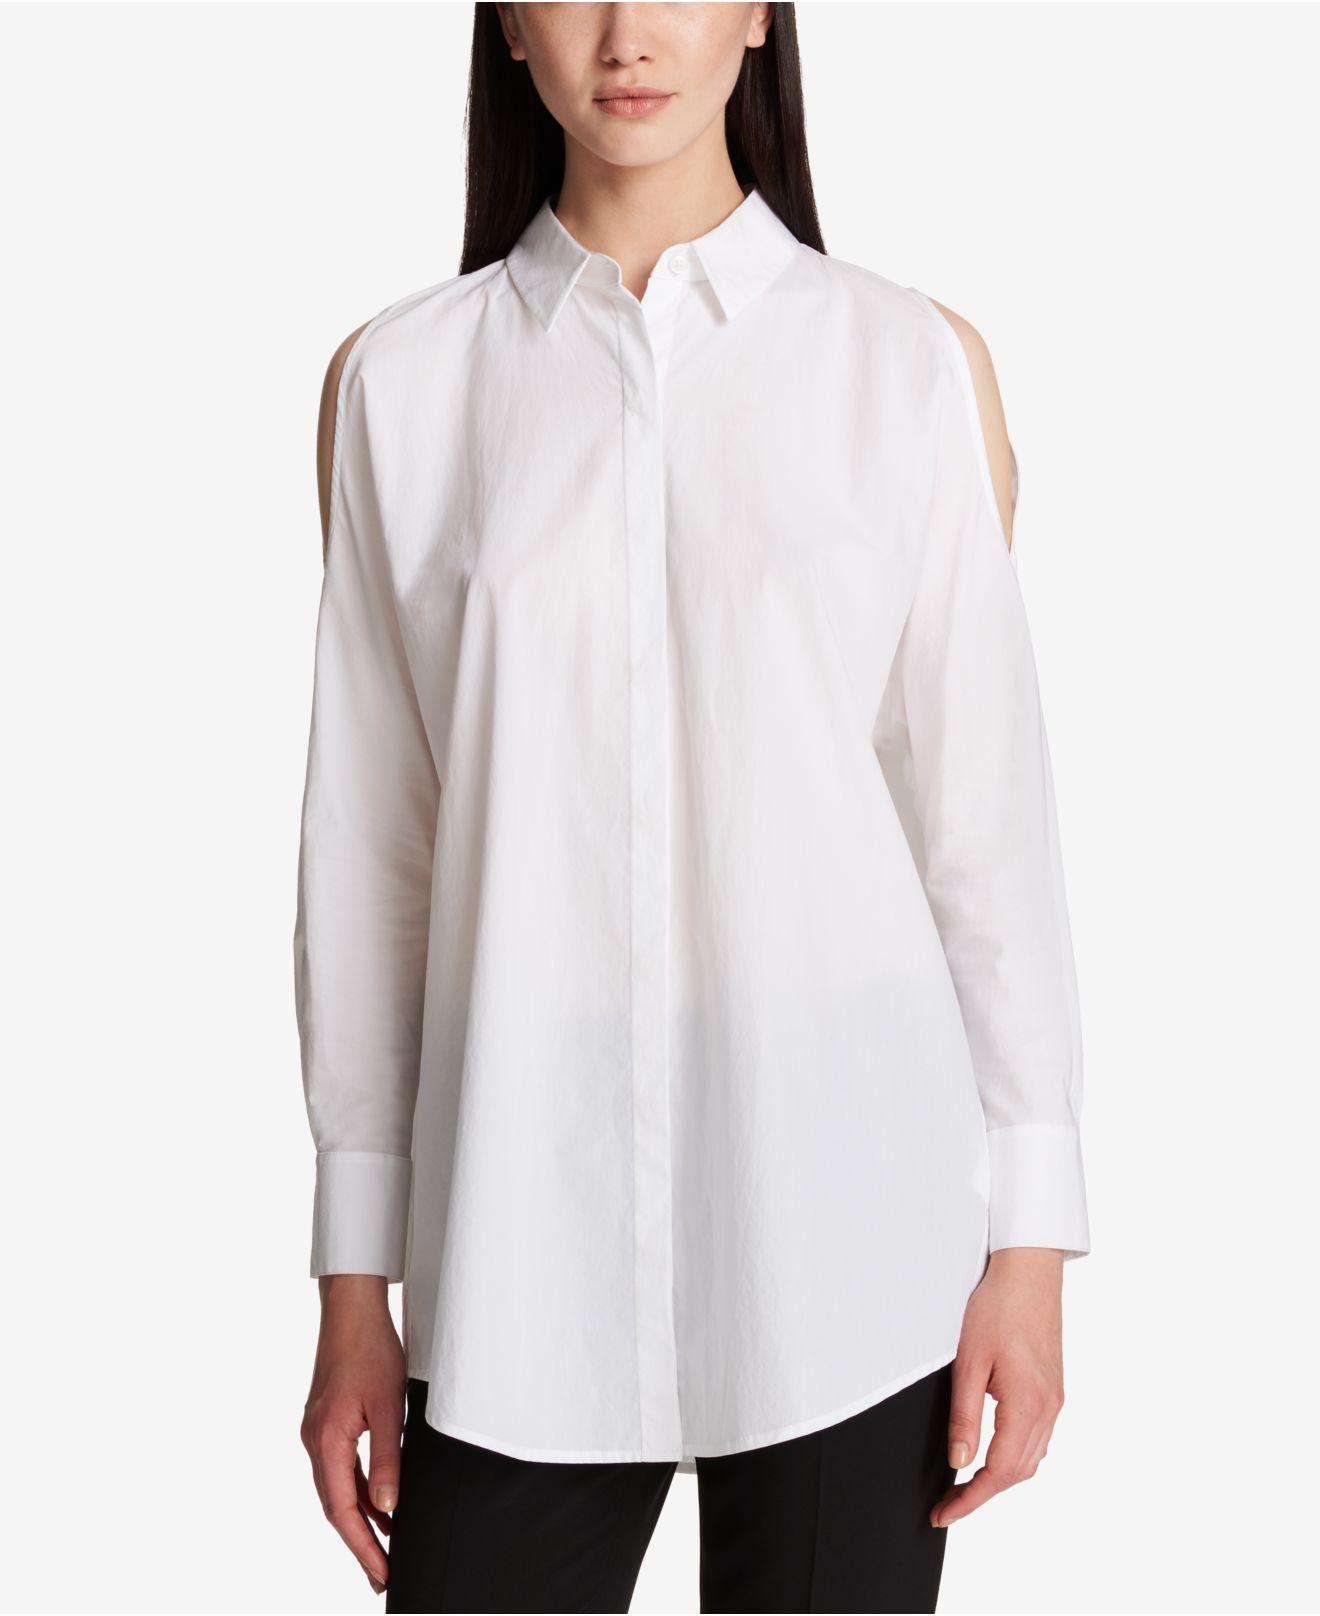 b8d076d77bea1b Lyst - DKNY Cotton Cold-shoulder Shirt in White